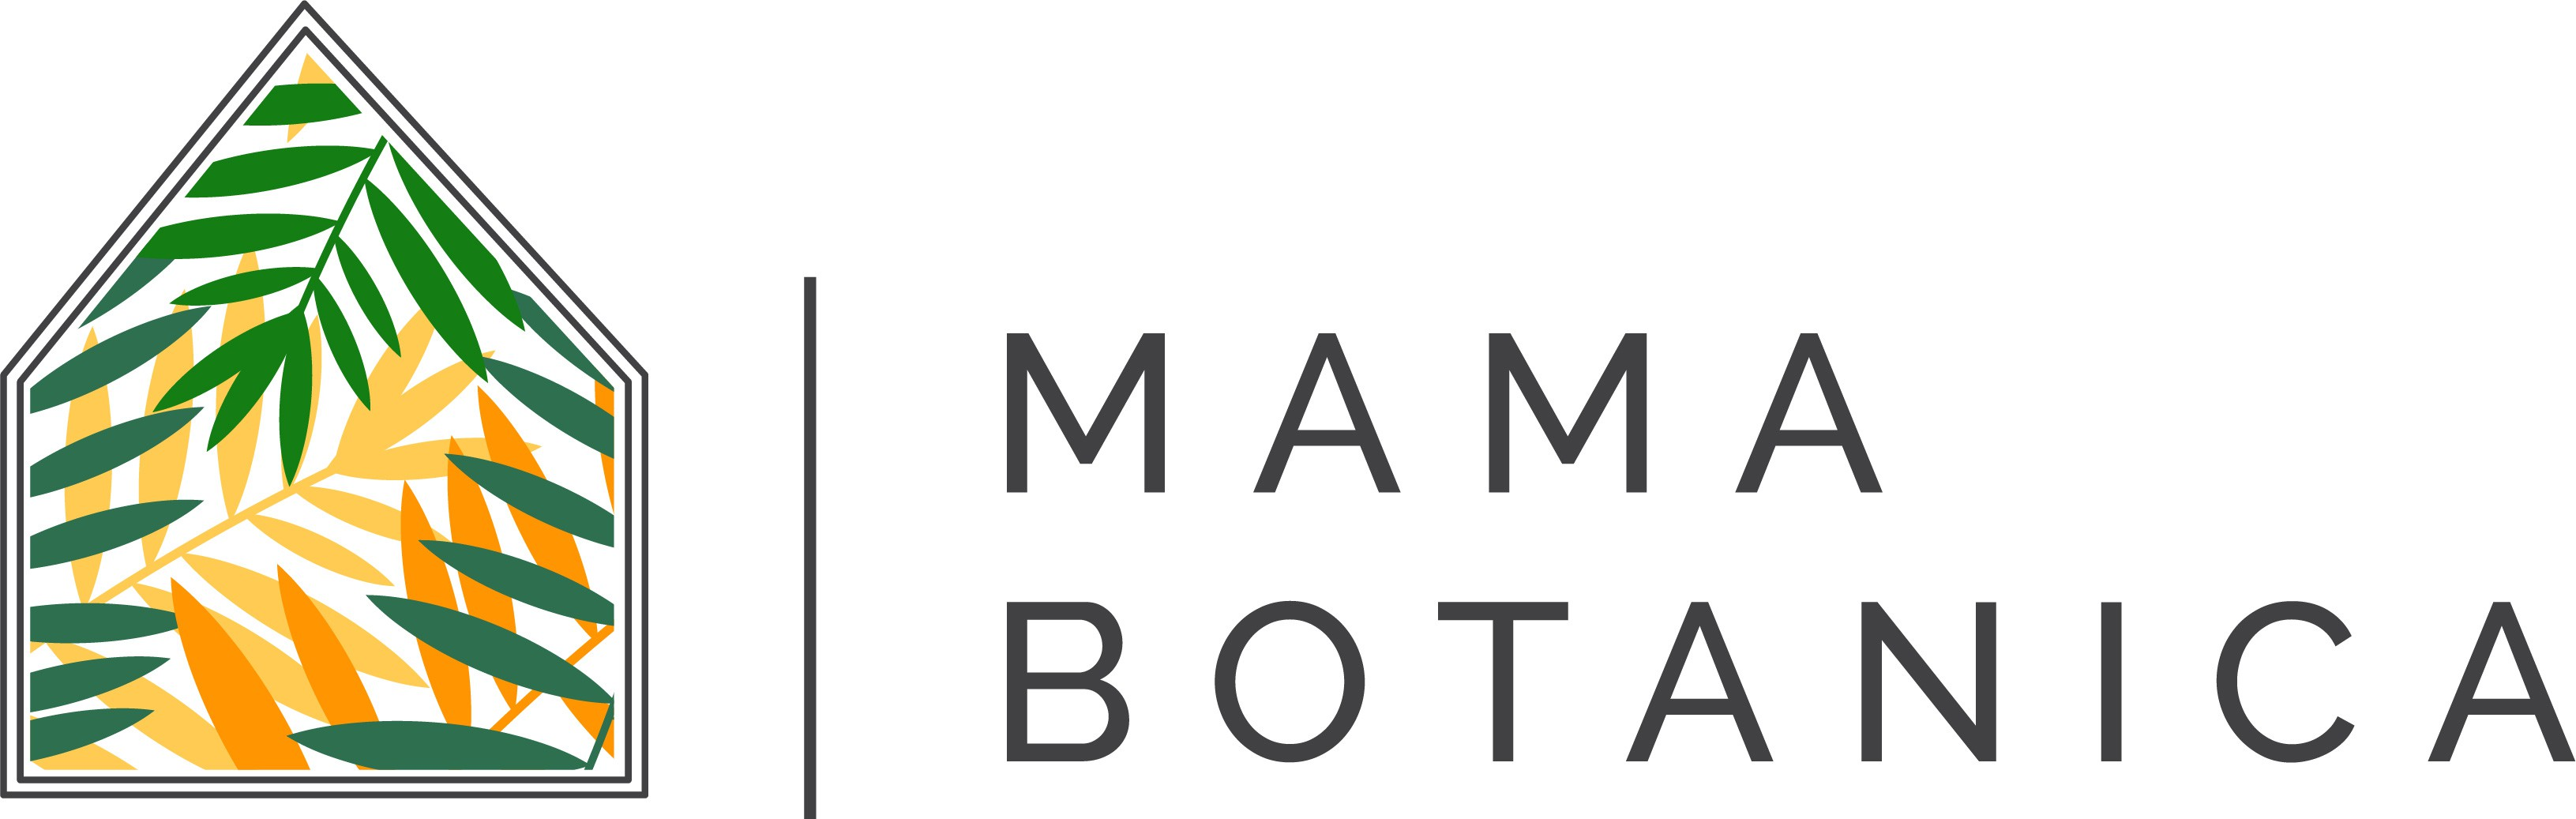 Honest and styleful logo for a plant shop in Melbourne